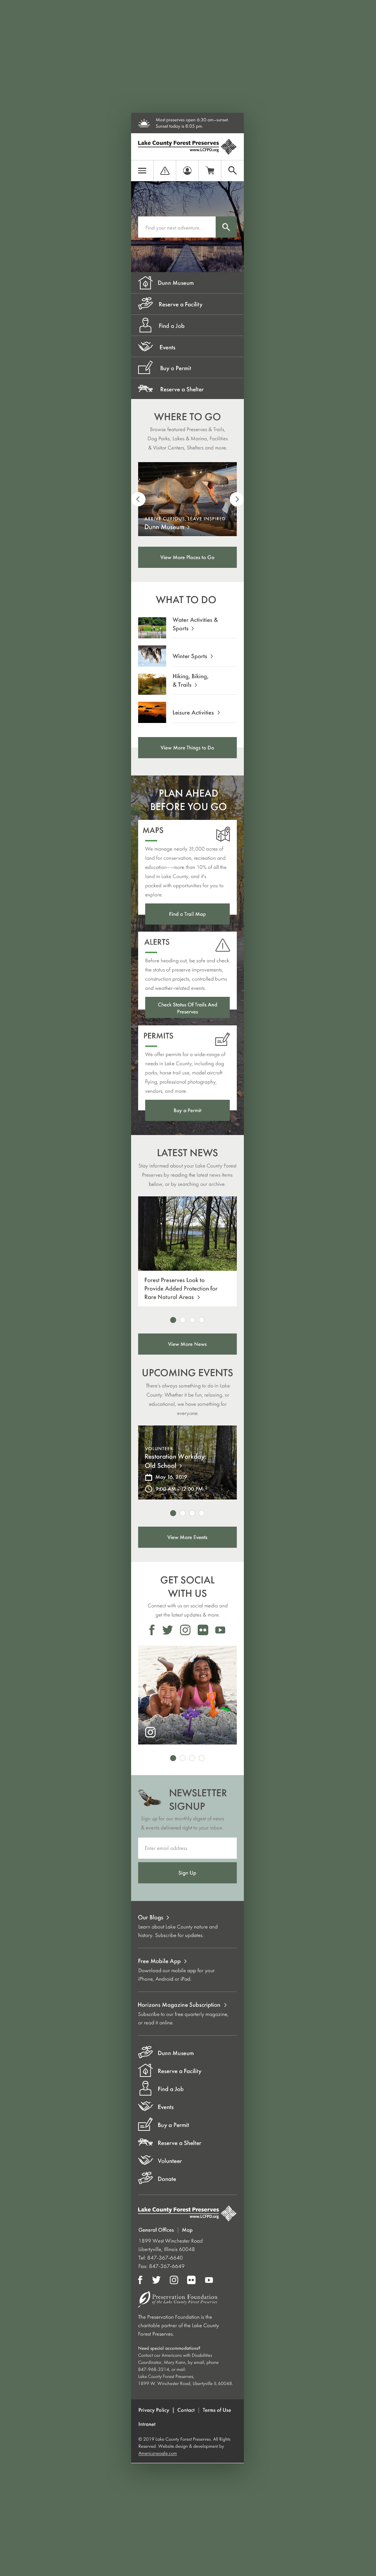 Lake County Forest Preserves Mobile Homepage